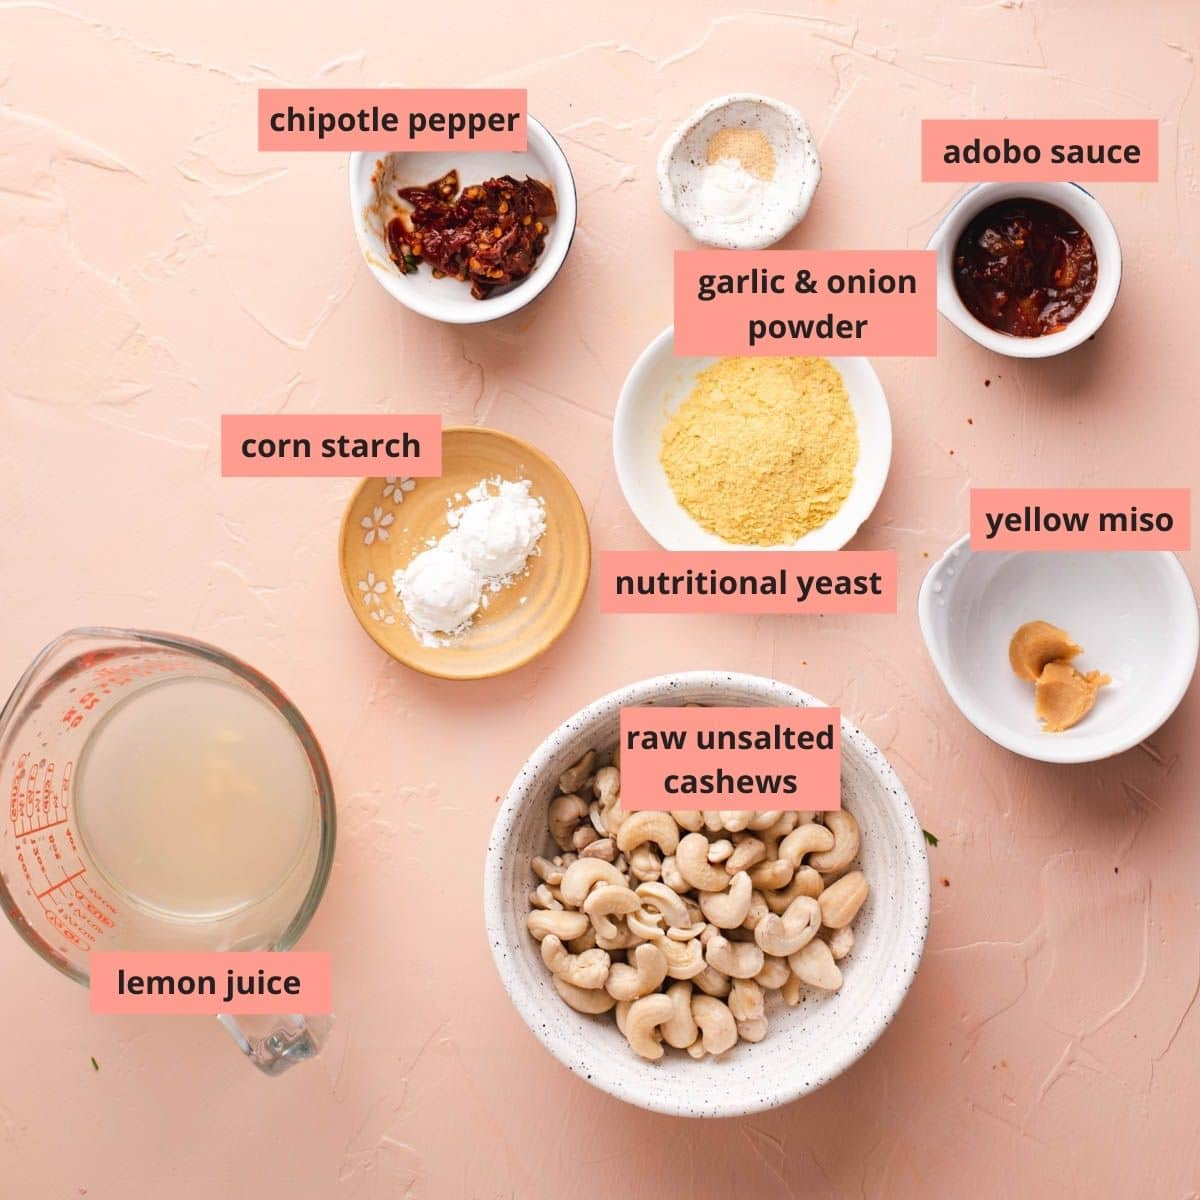 Labeled ingredients used to make cashew queso